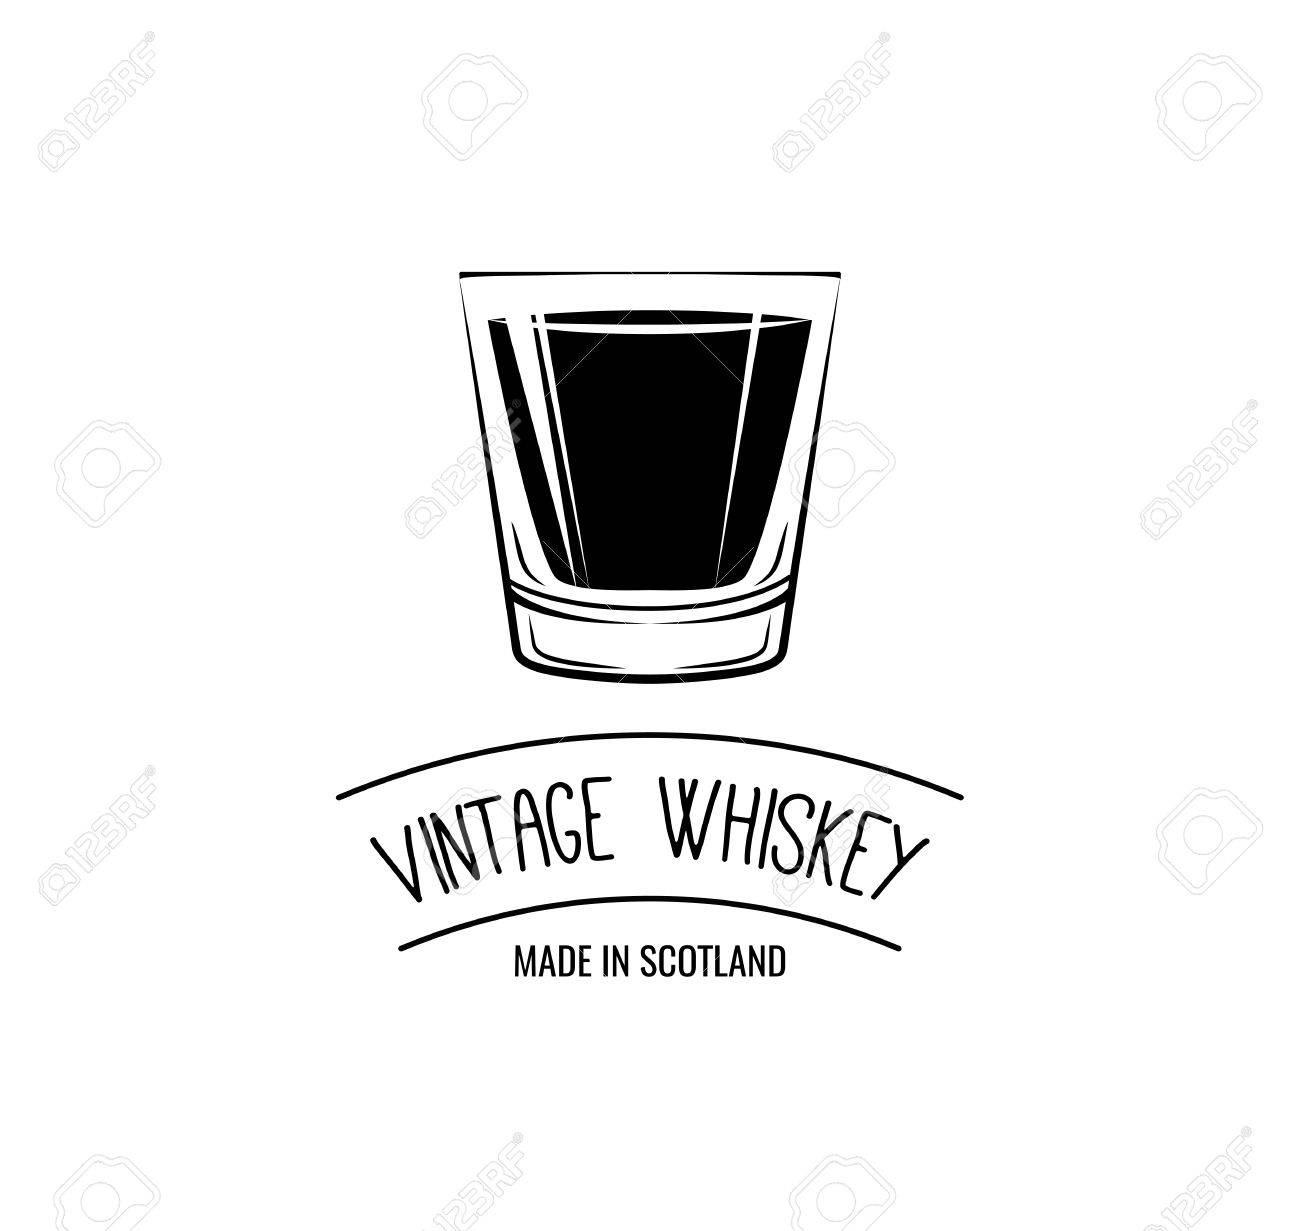 Wisky Glas Vintage Whiskey Label Whisky Glass Vector Illustration